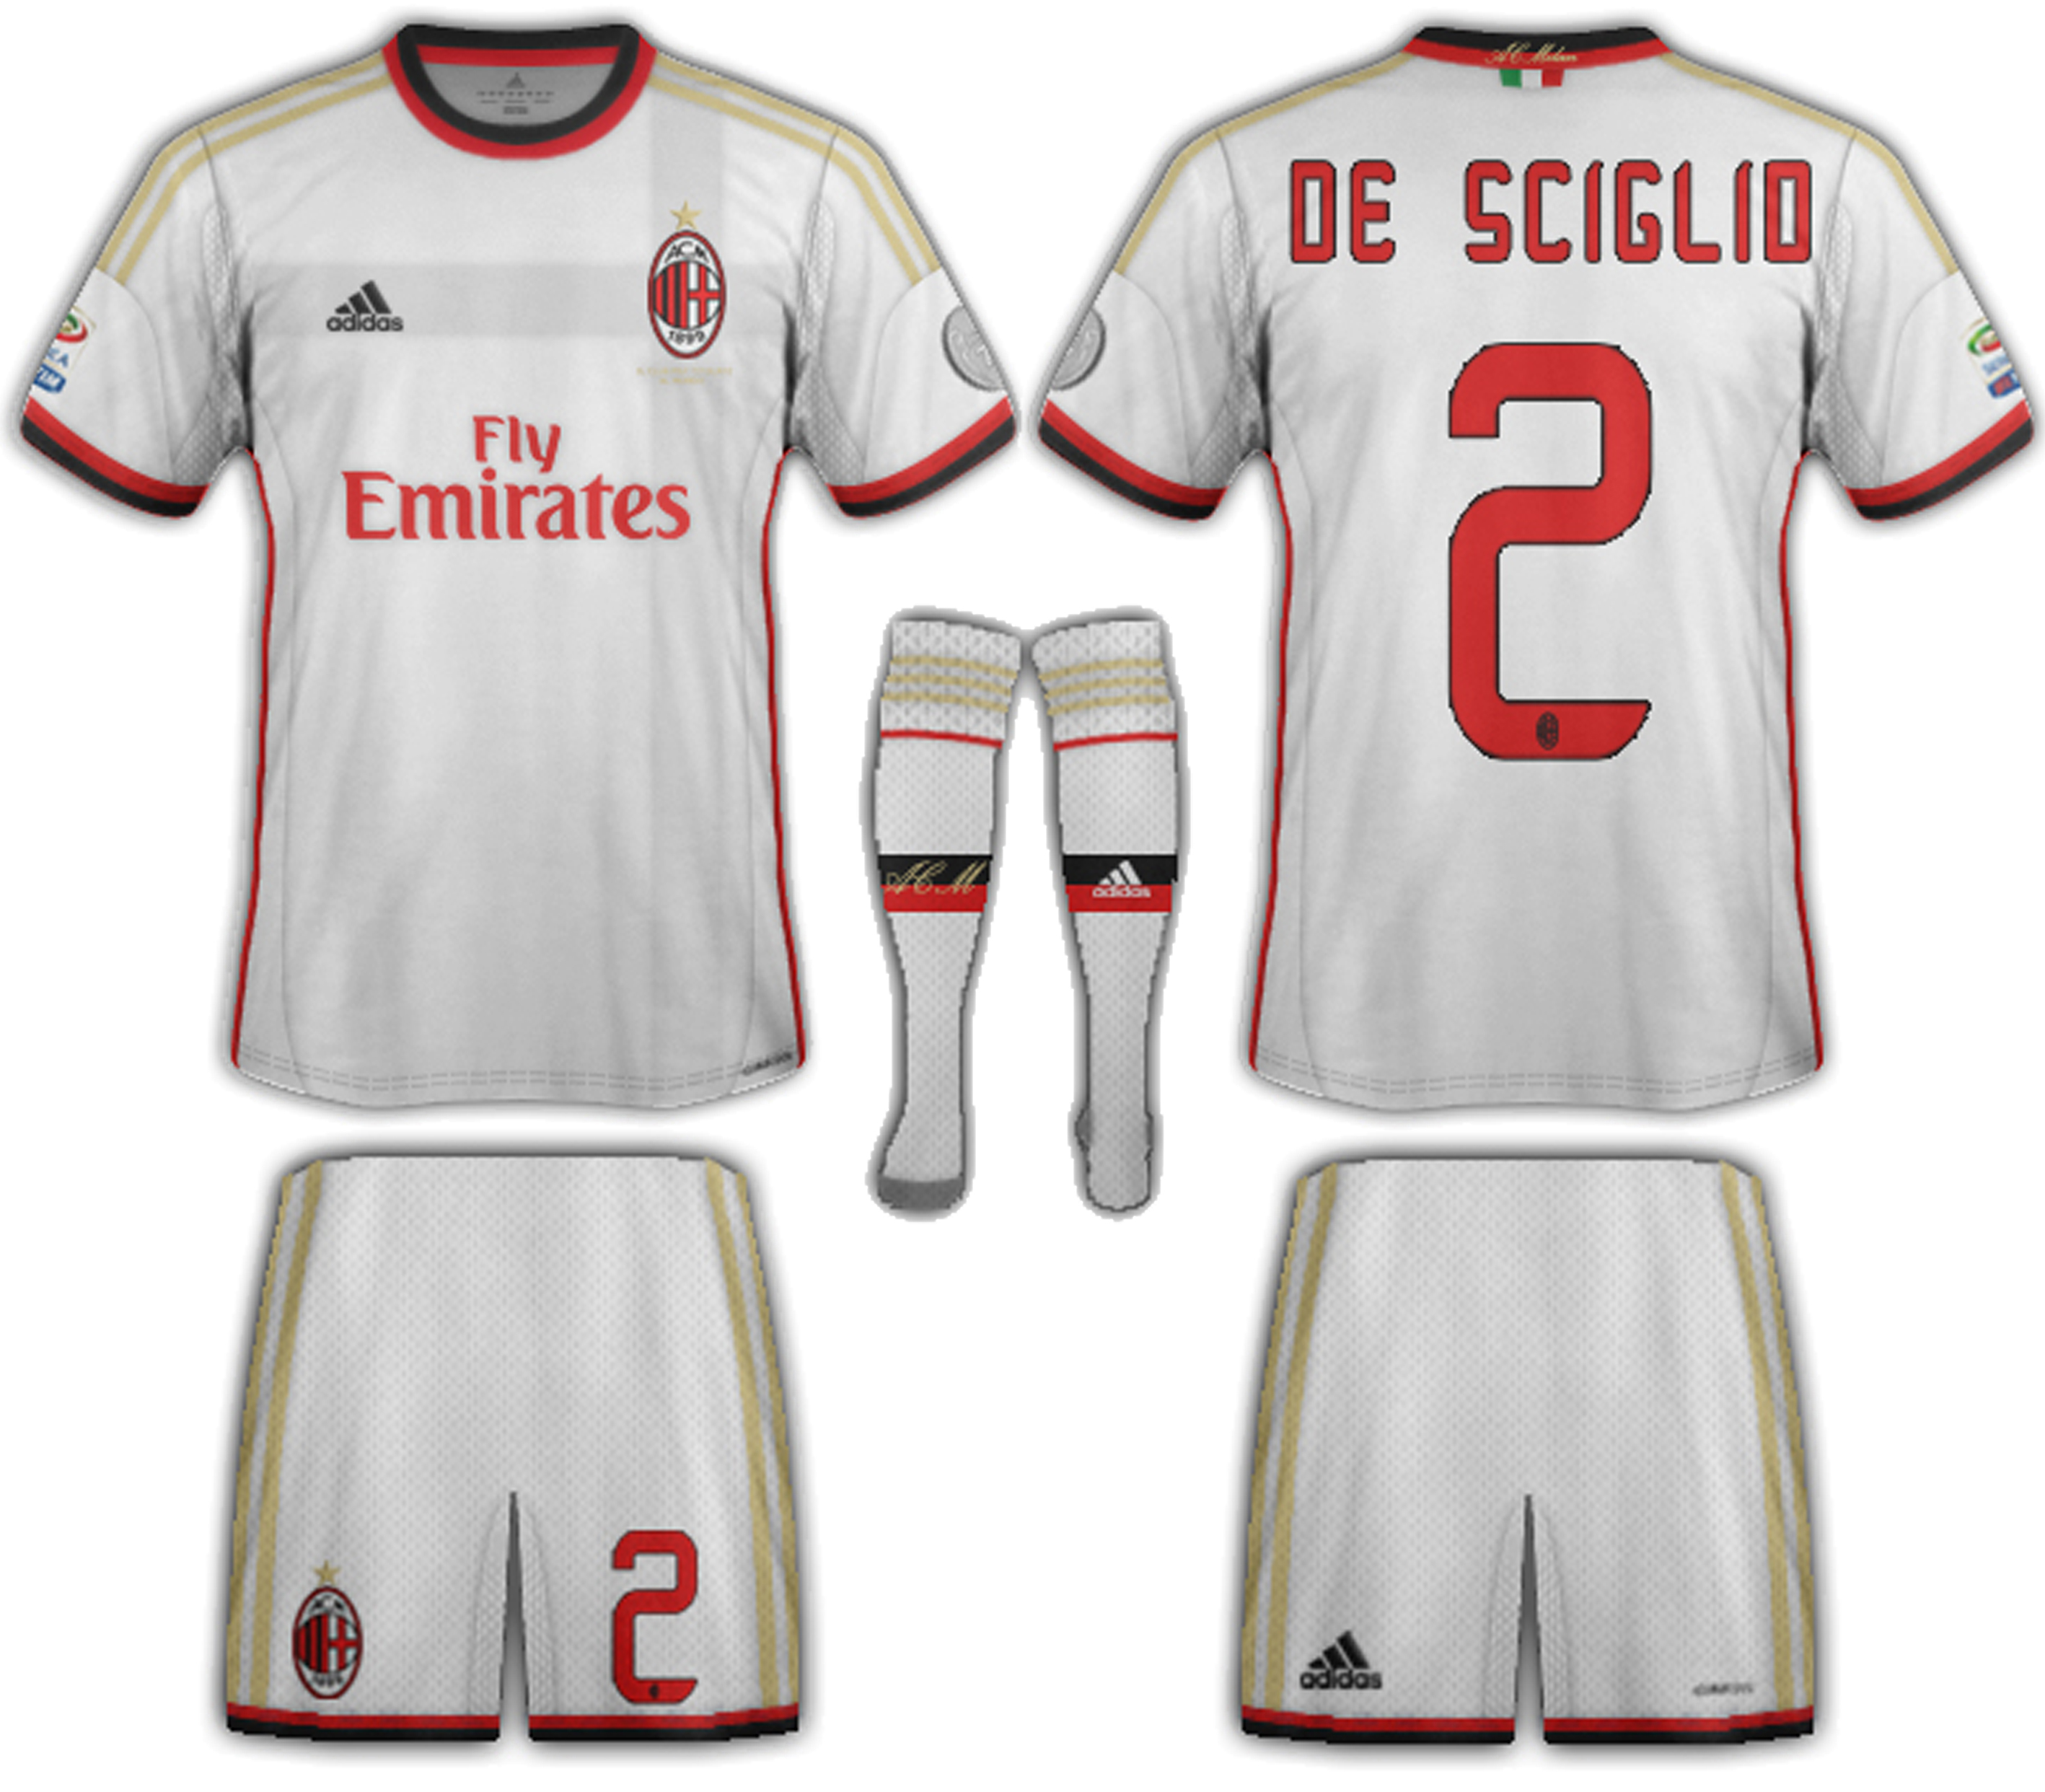 low priced f5909 25d58 AC Milan Fantasy away 2013-14